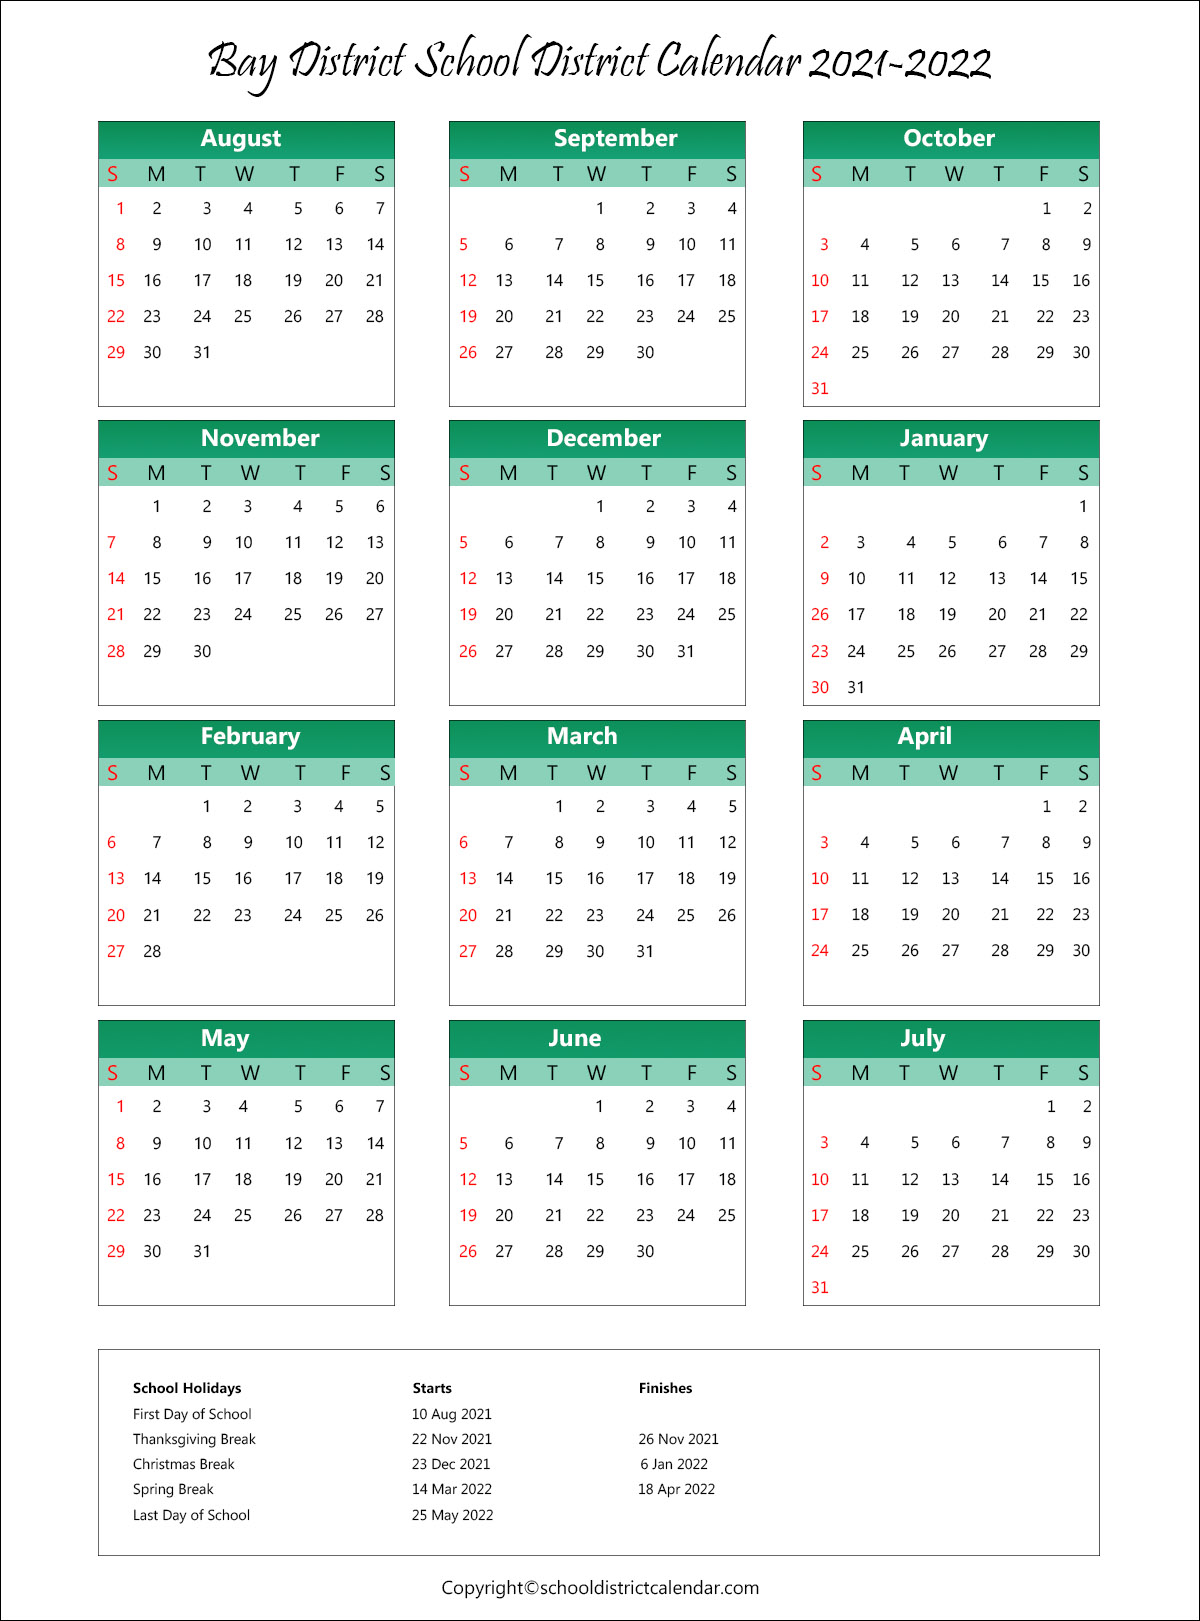 Bay District Schools, Florida Calendar Holidays 2021